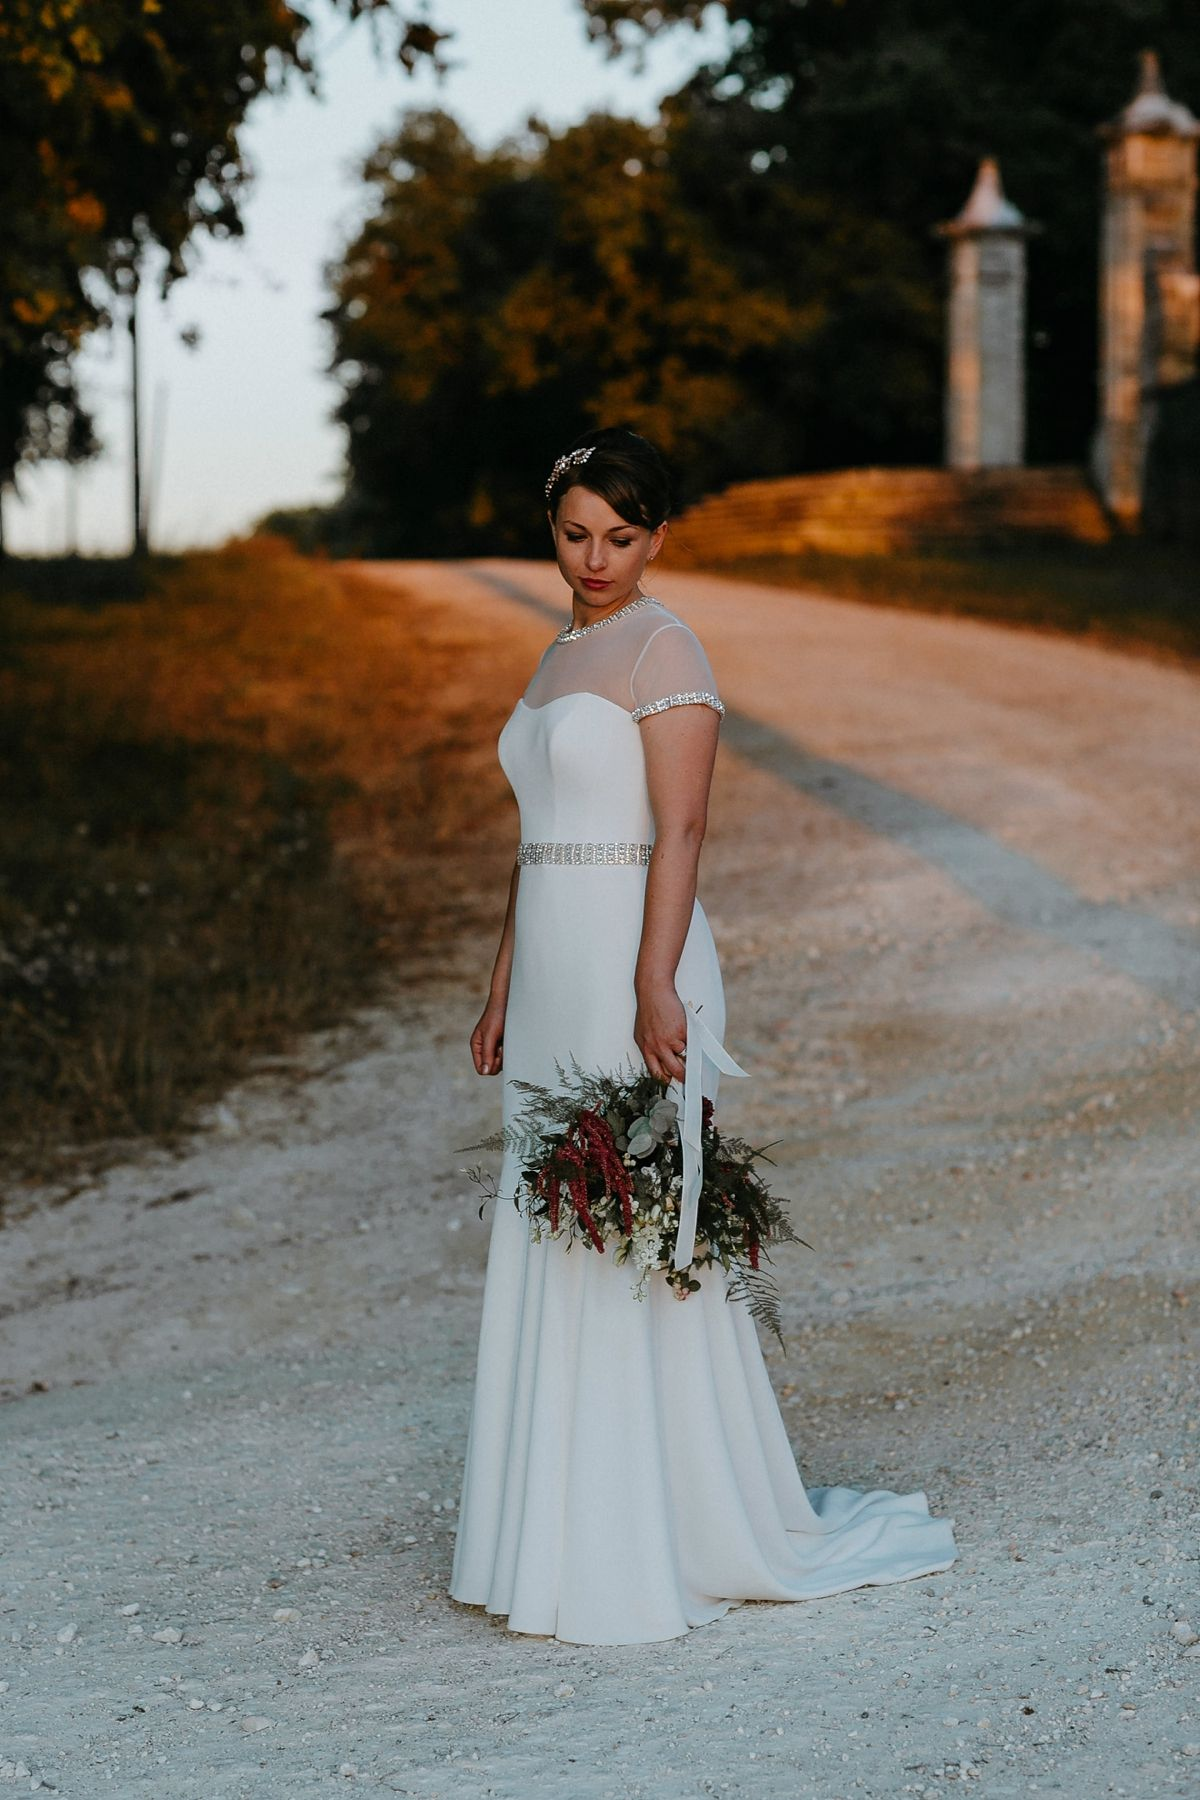 A chic suzanne neville gown for a classic french château wedding